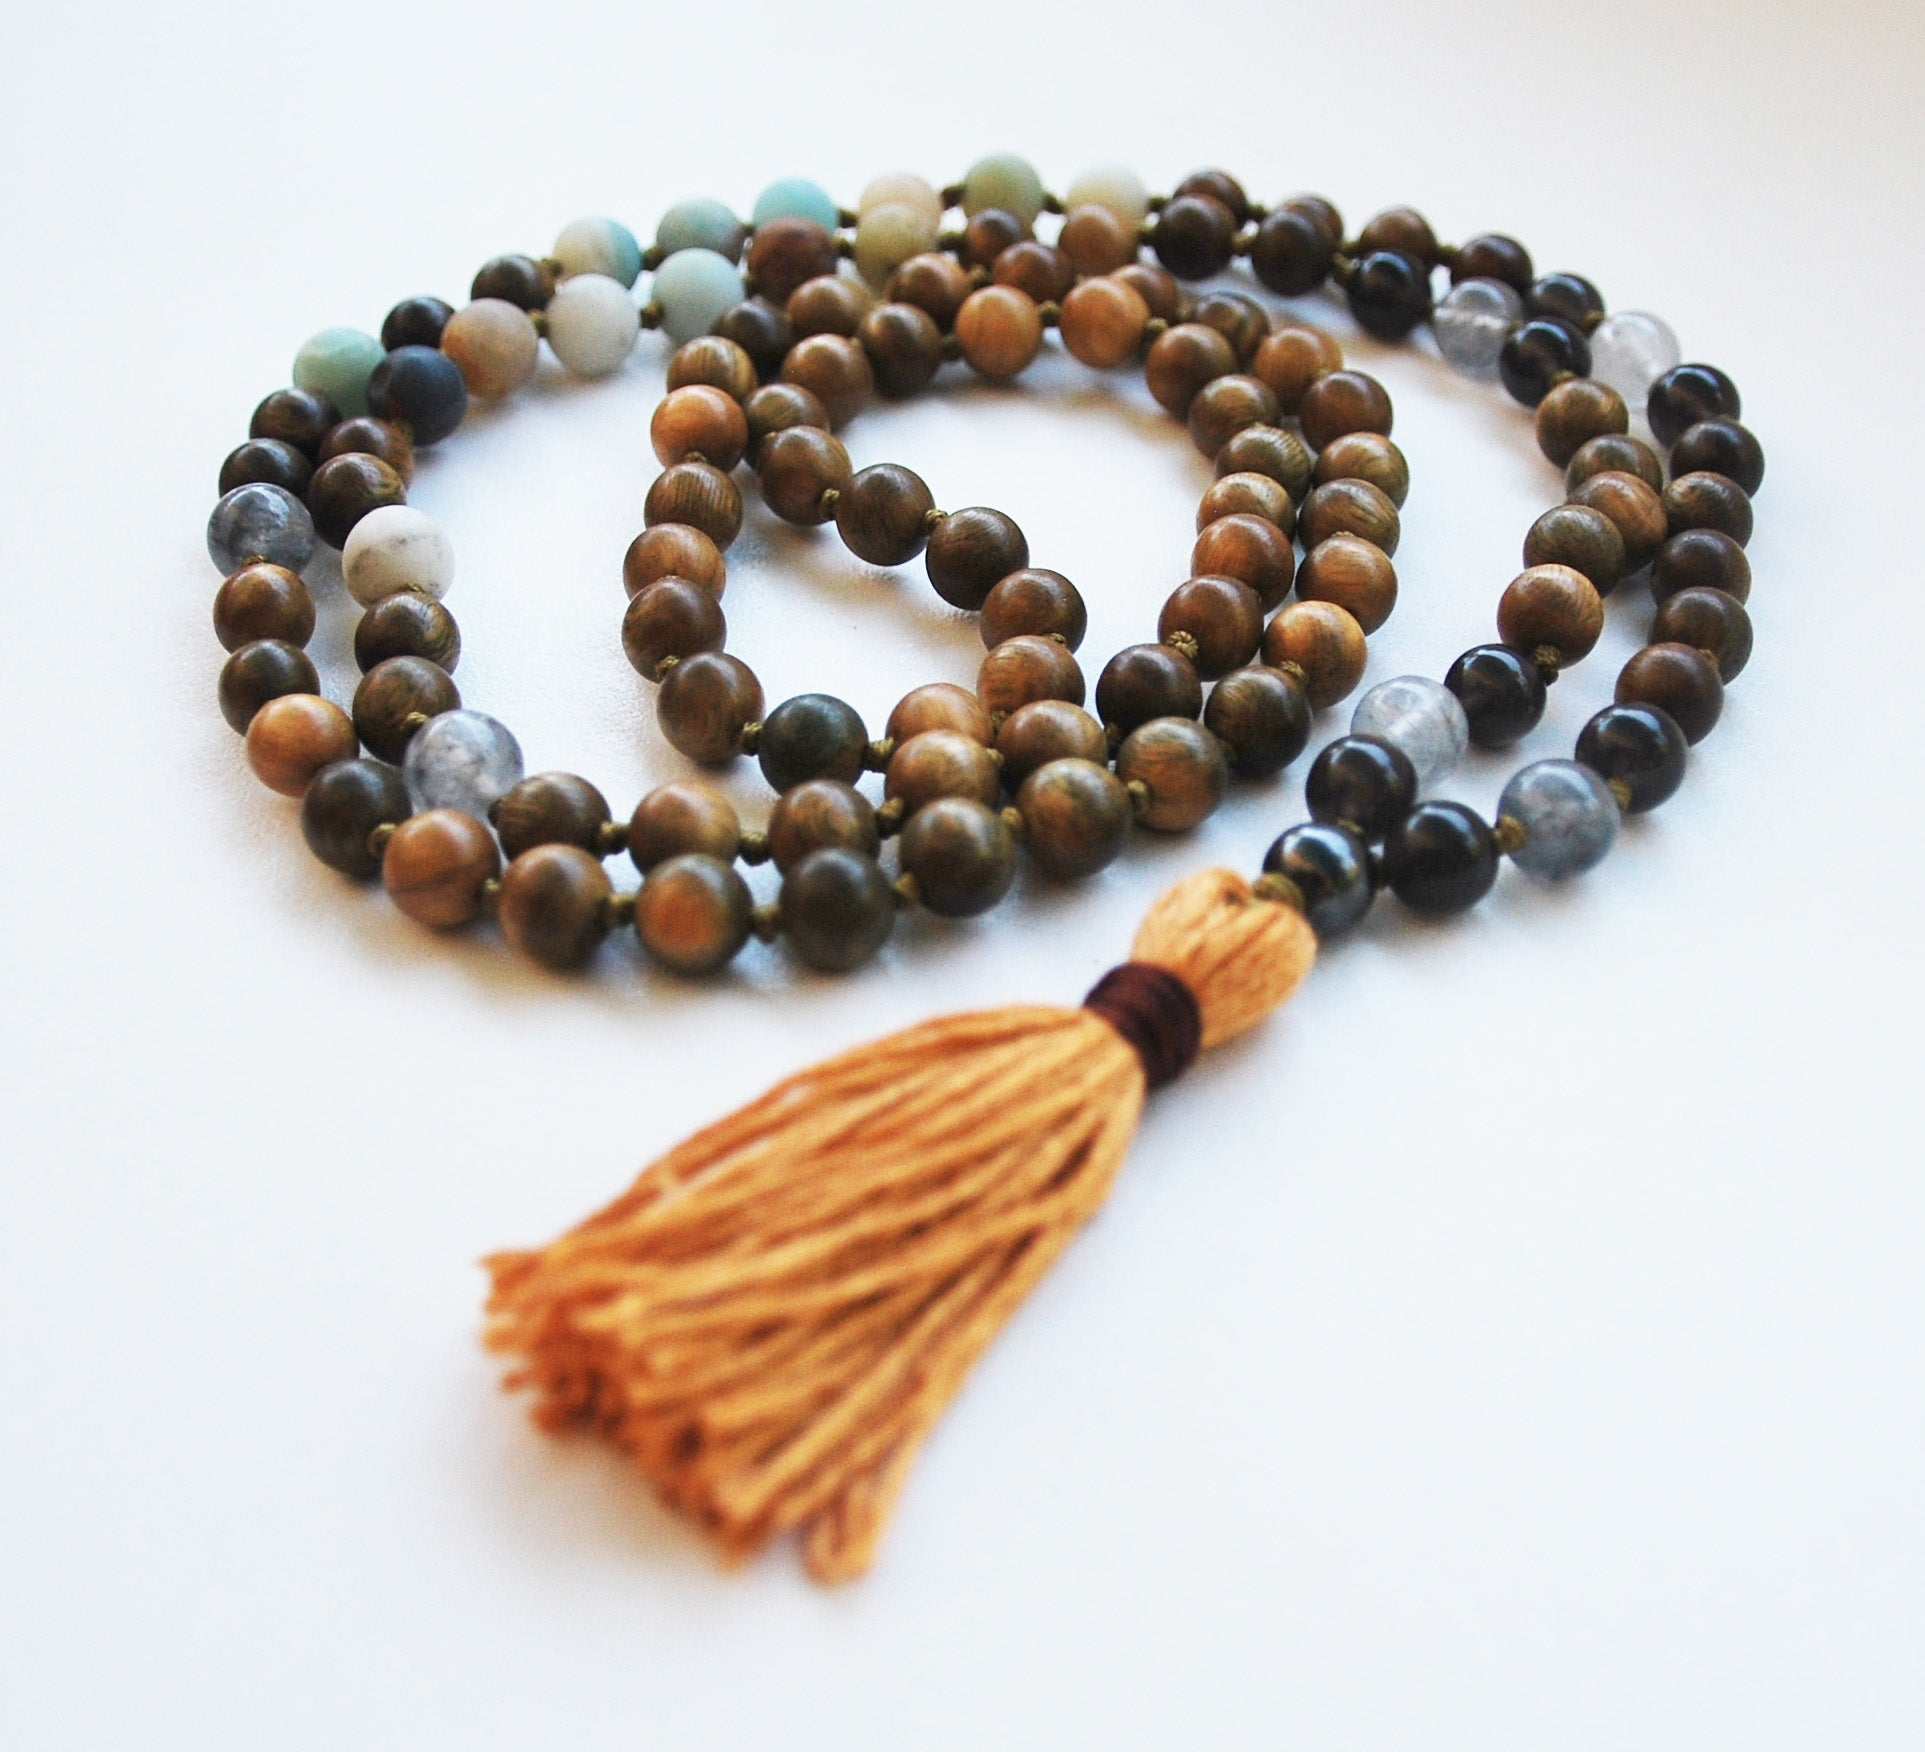 8mm Green Sandalwood & Amazonite 108 Knotted Mala Necklace with Cotton Tassel